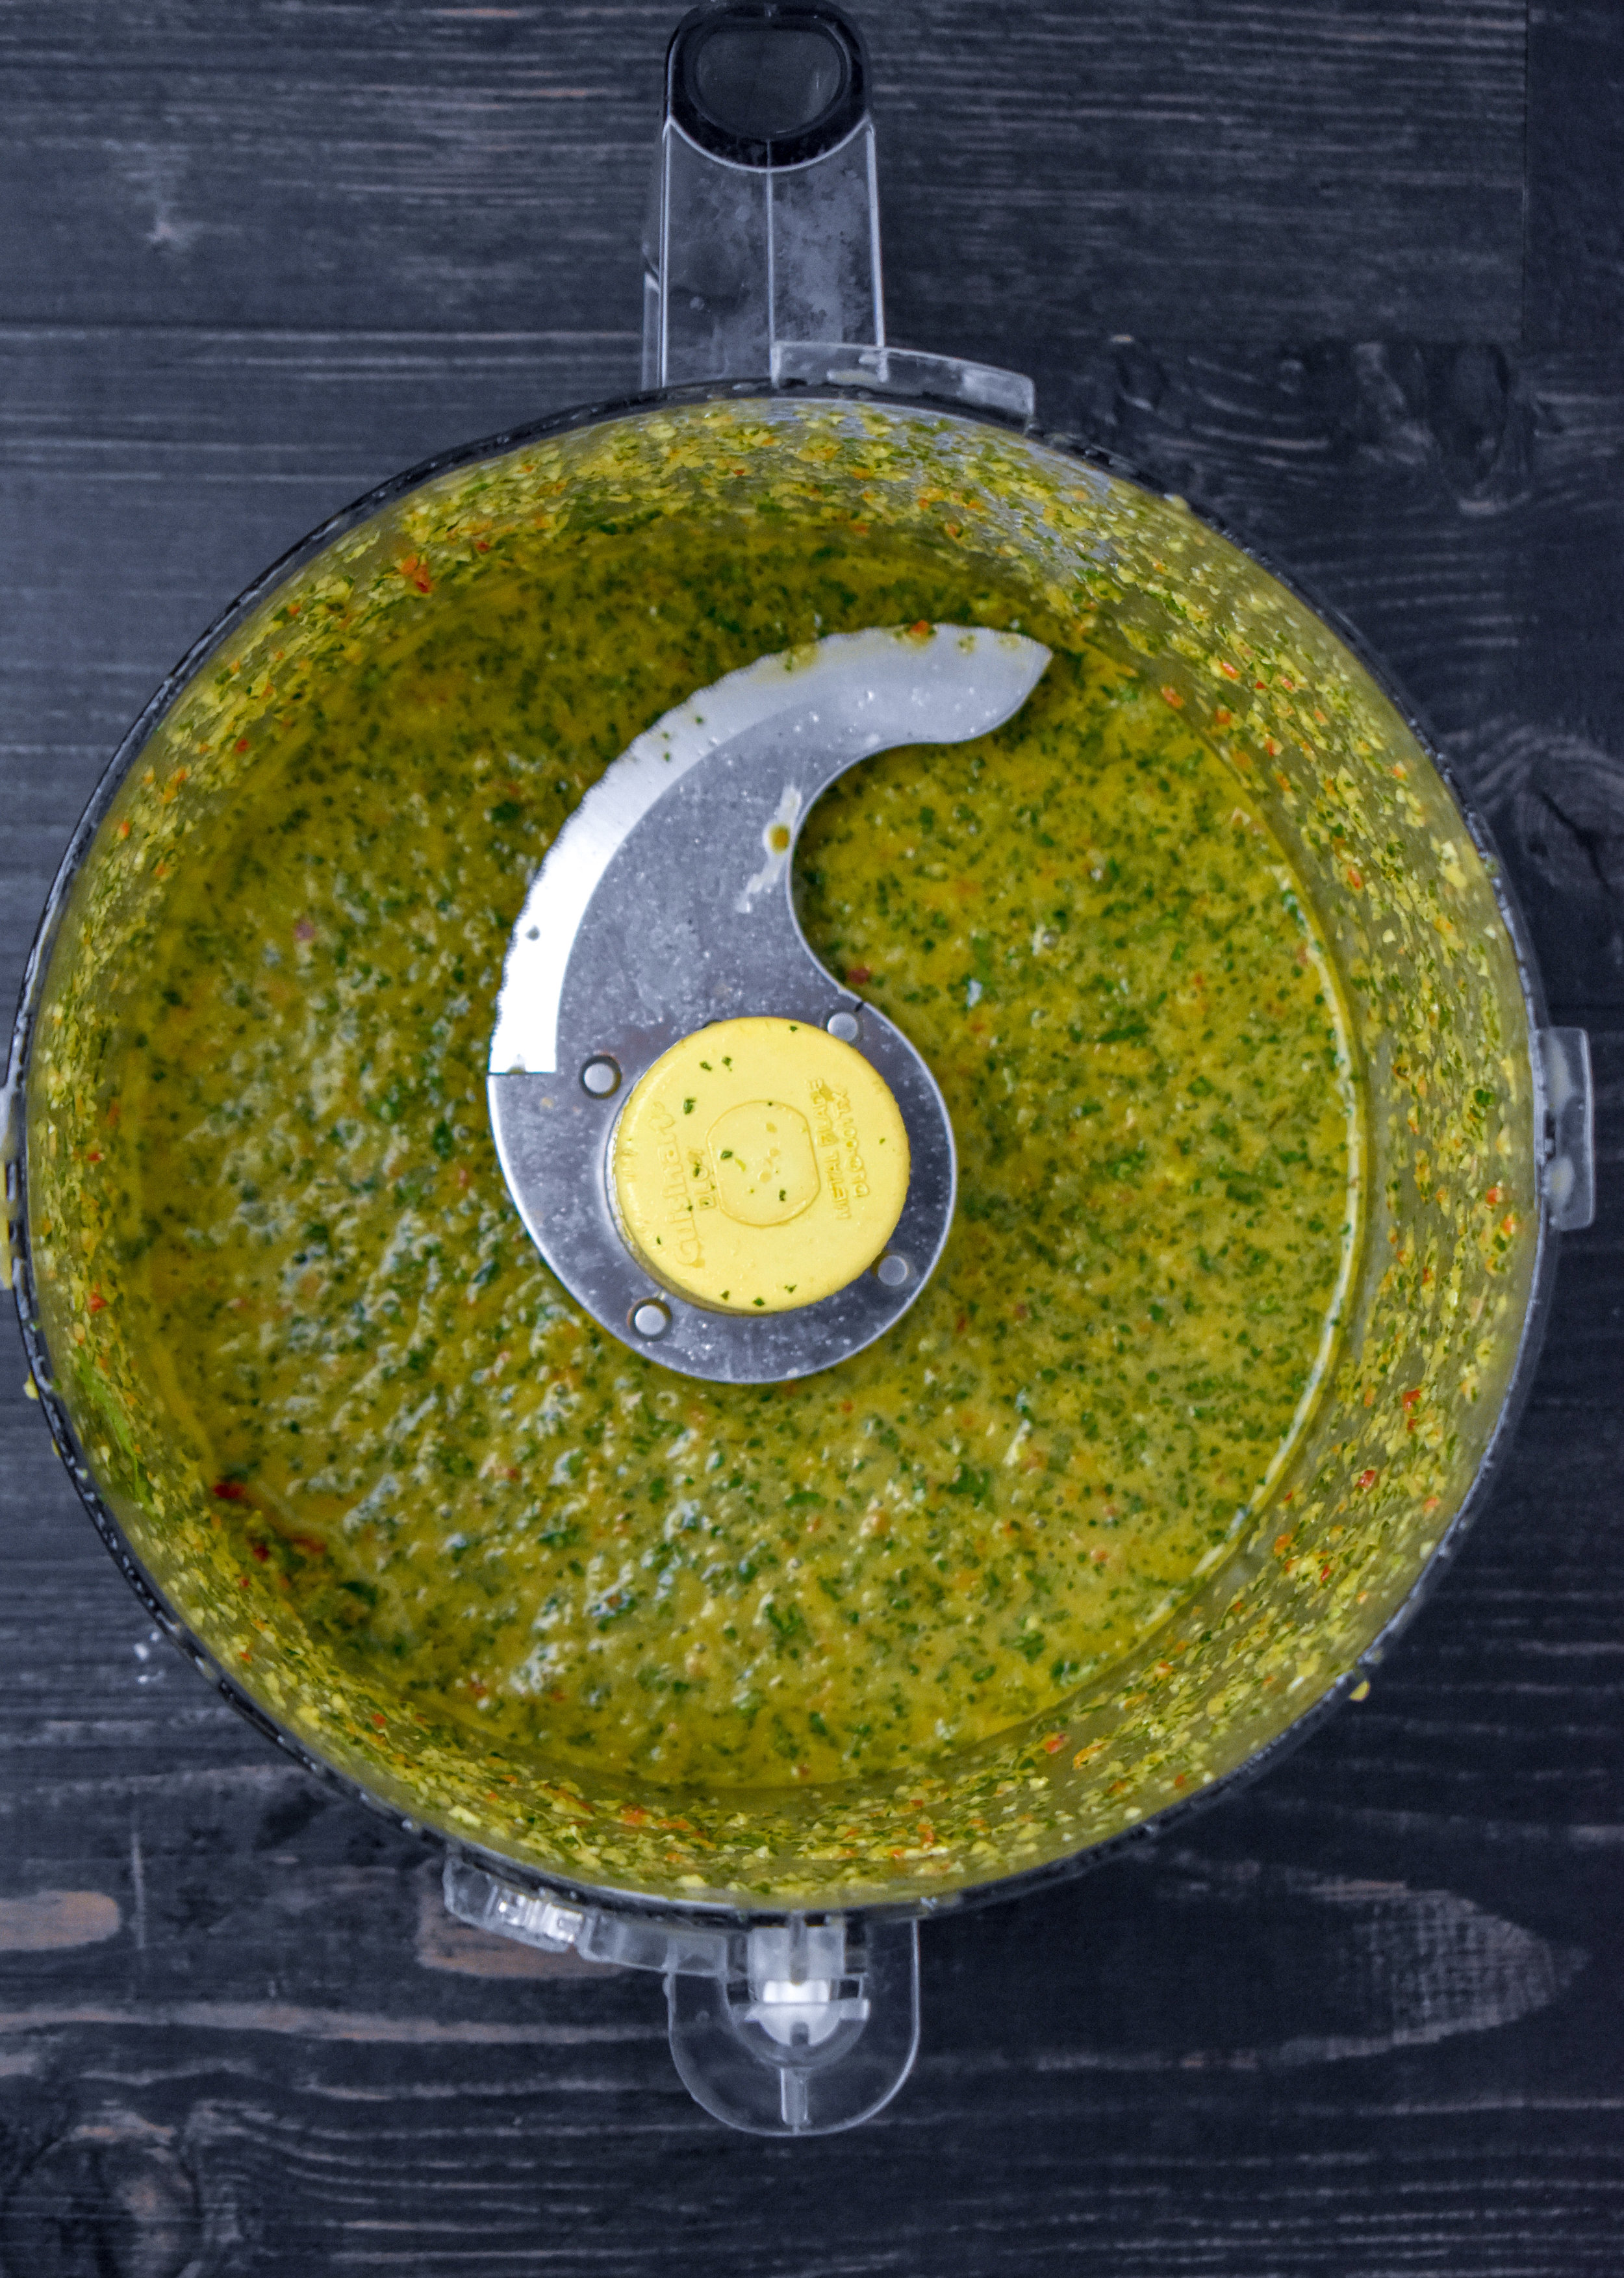 2. While the corn cooks, add all your chimichurri ingredients to a food processor or high-speed blender and mix for 15-20 seconds. Scrape down the sides and repeat.